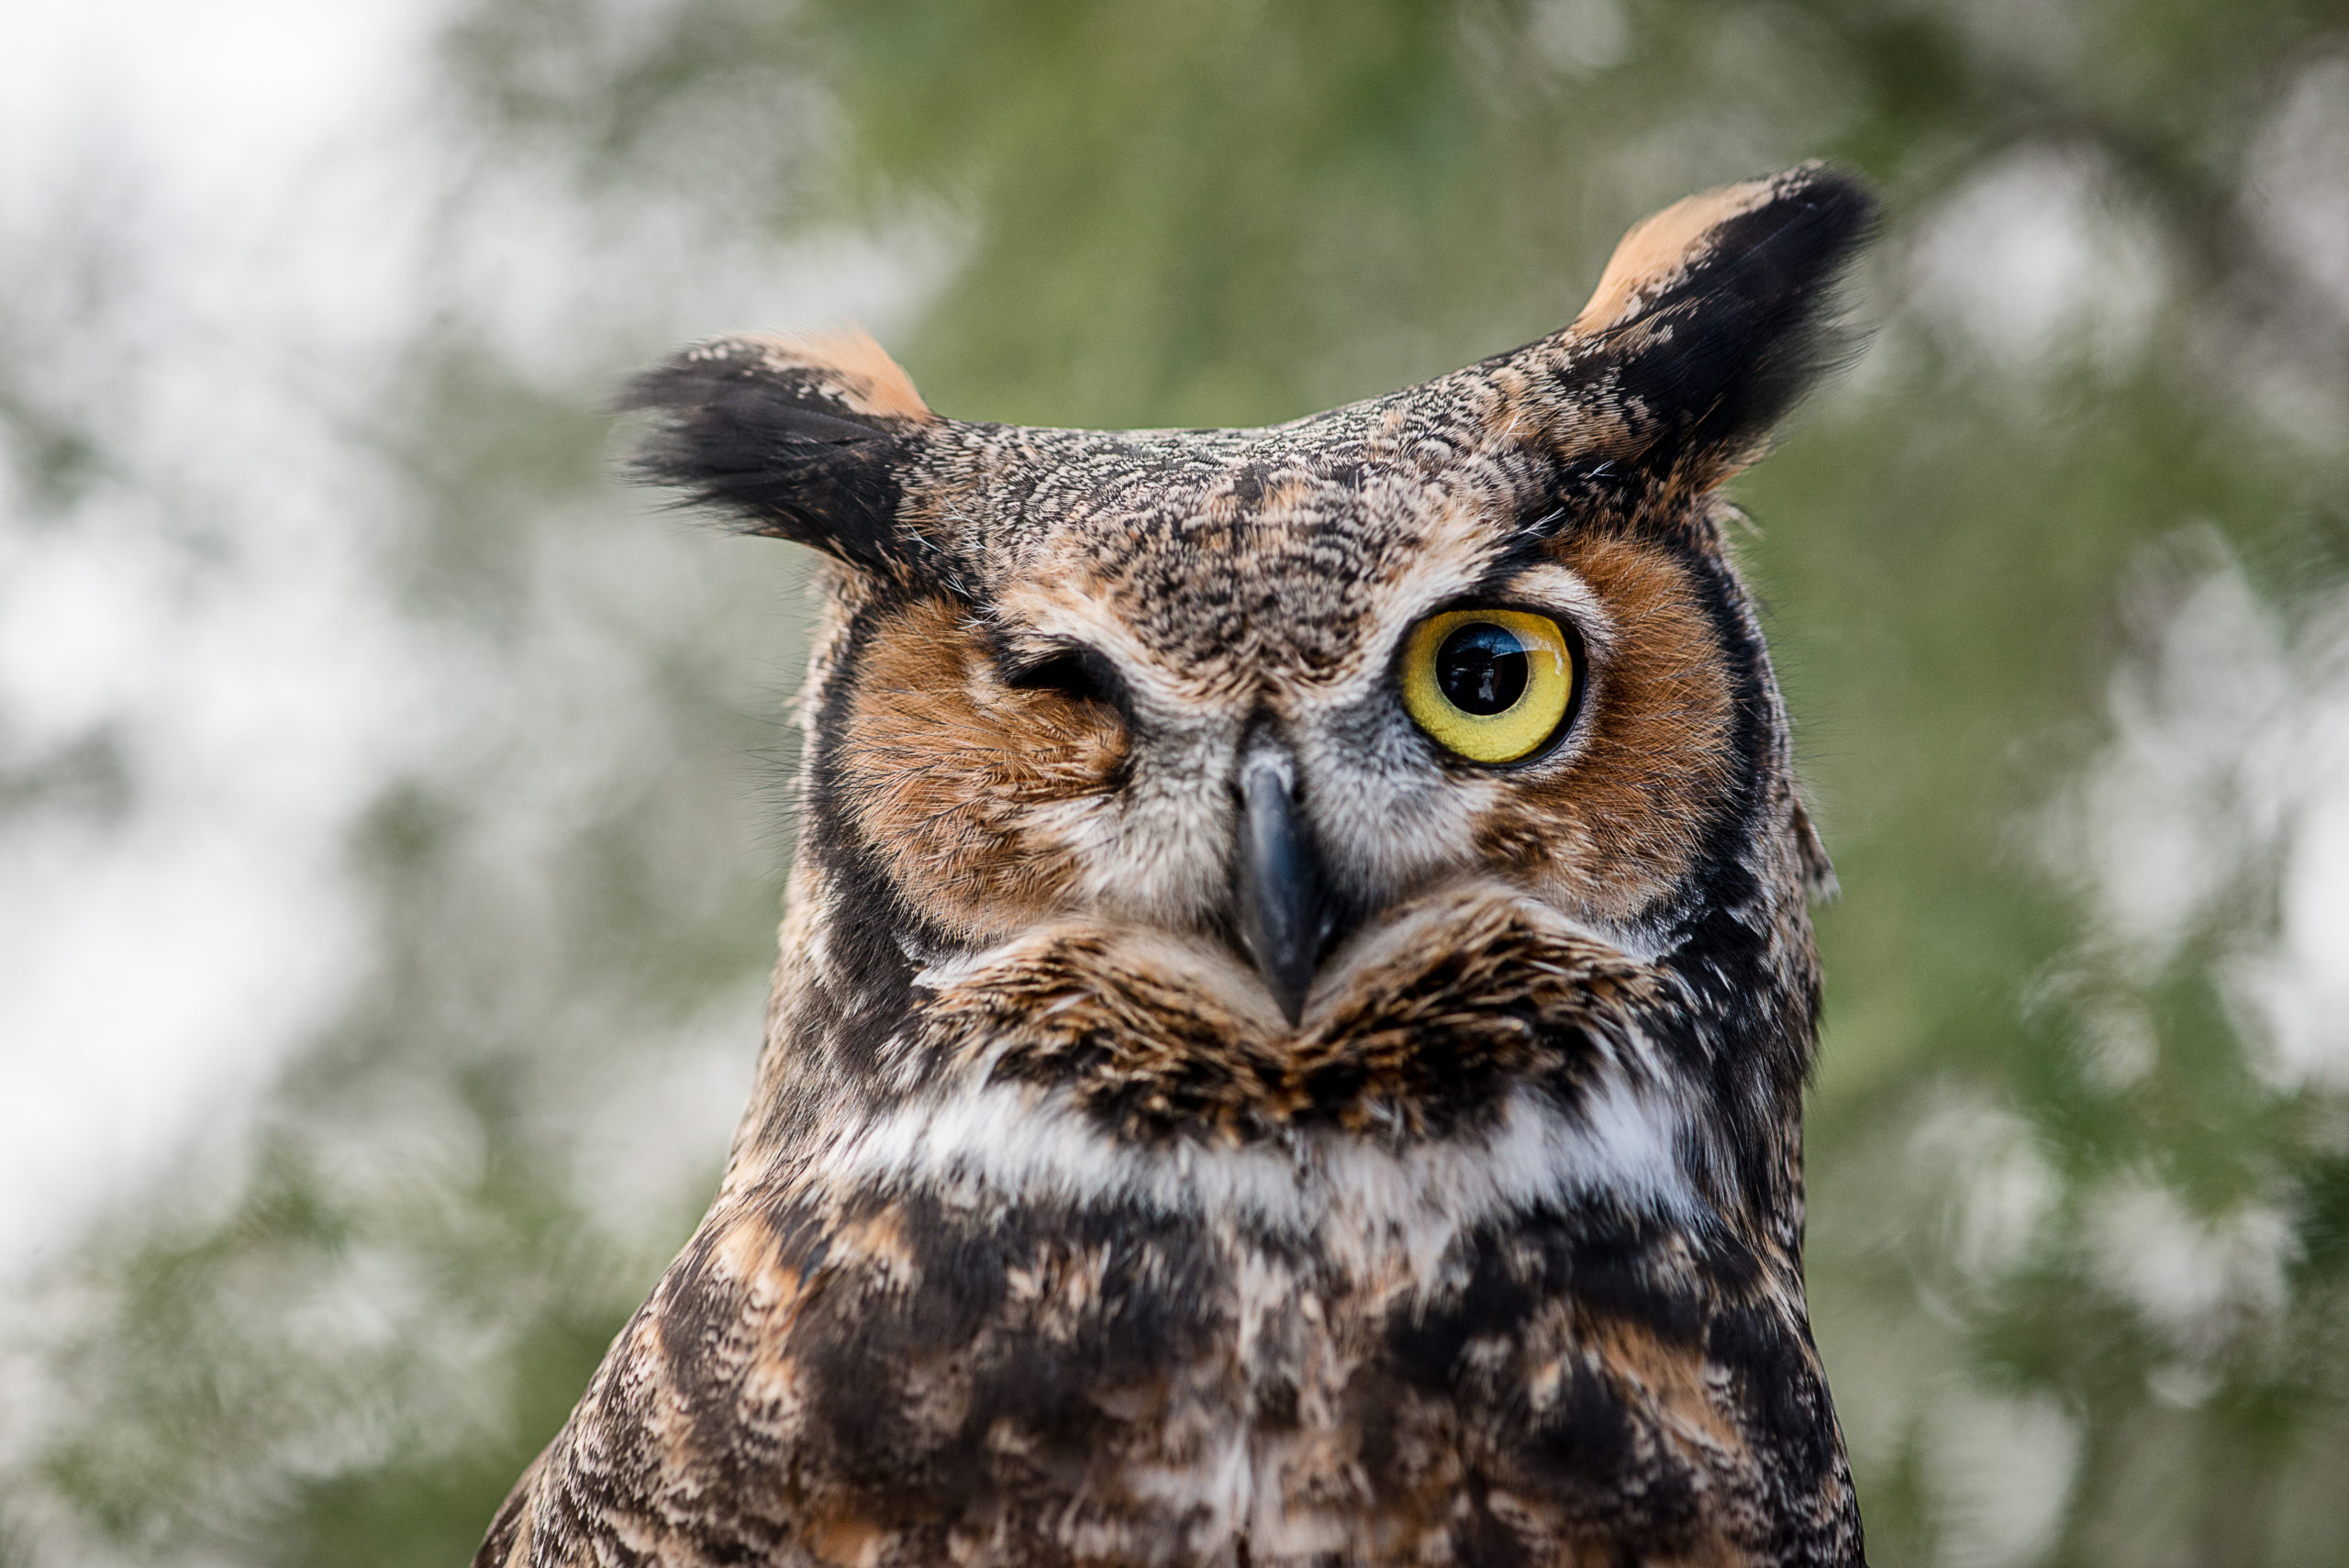 5 things you didn't know about Great Horned Owls